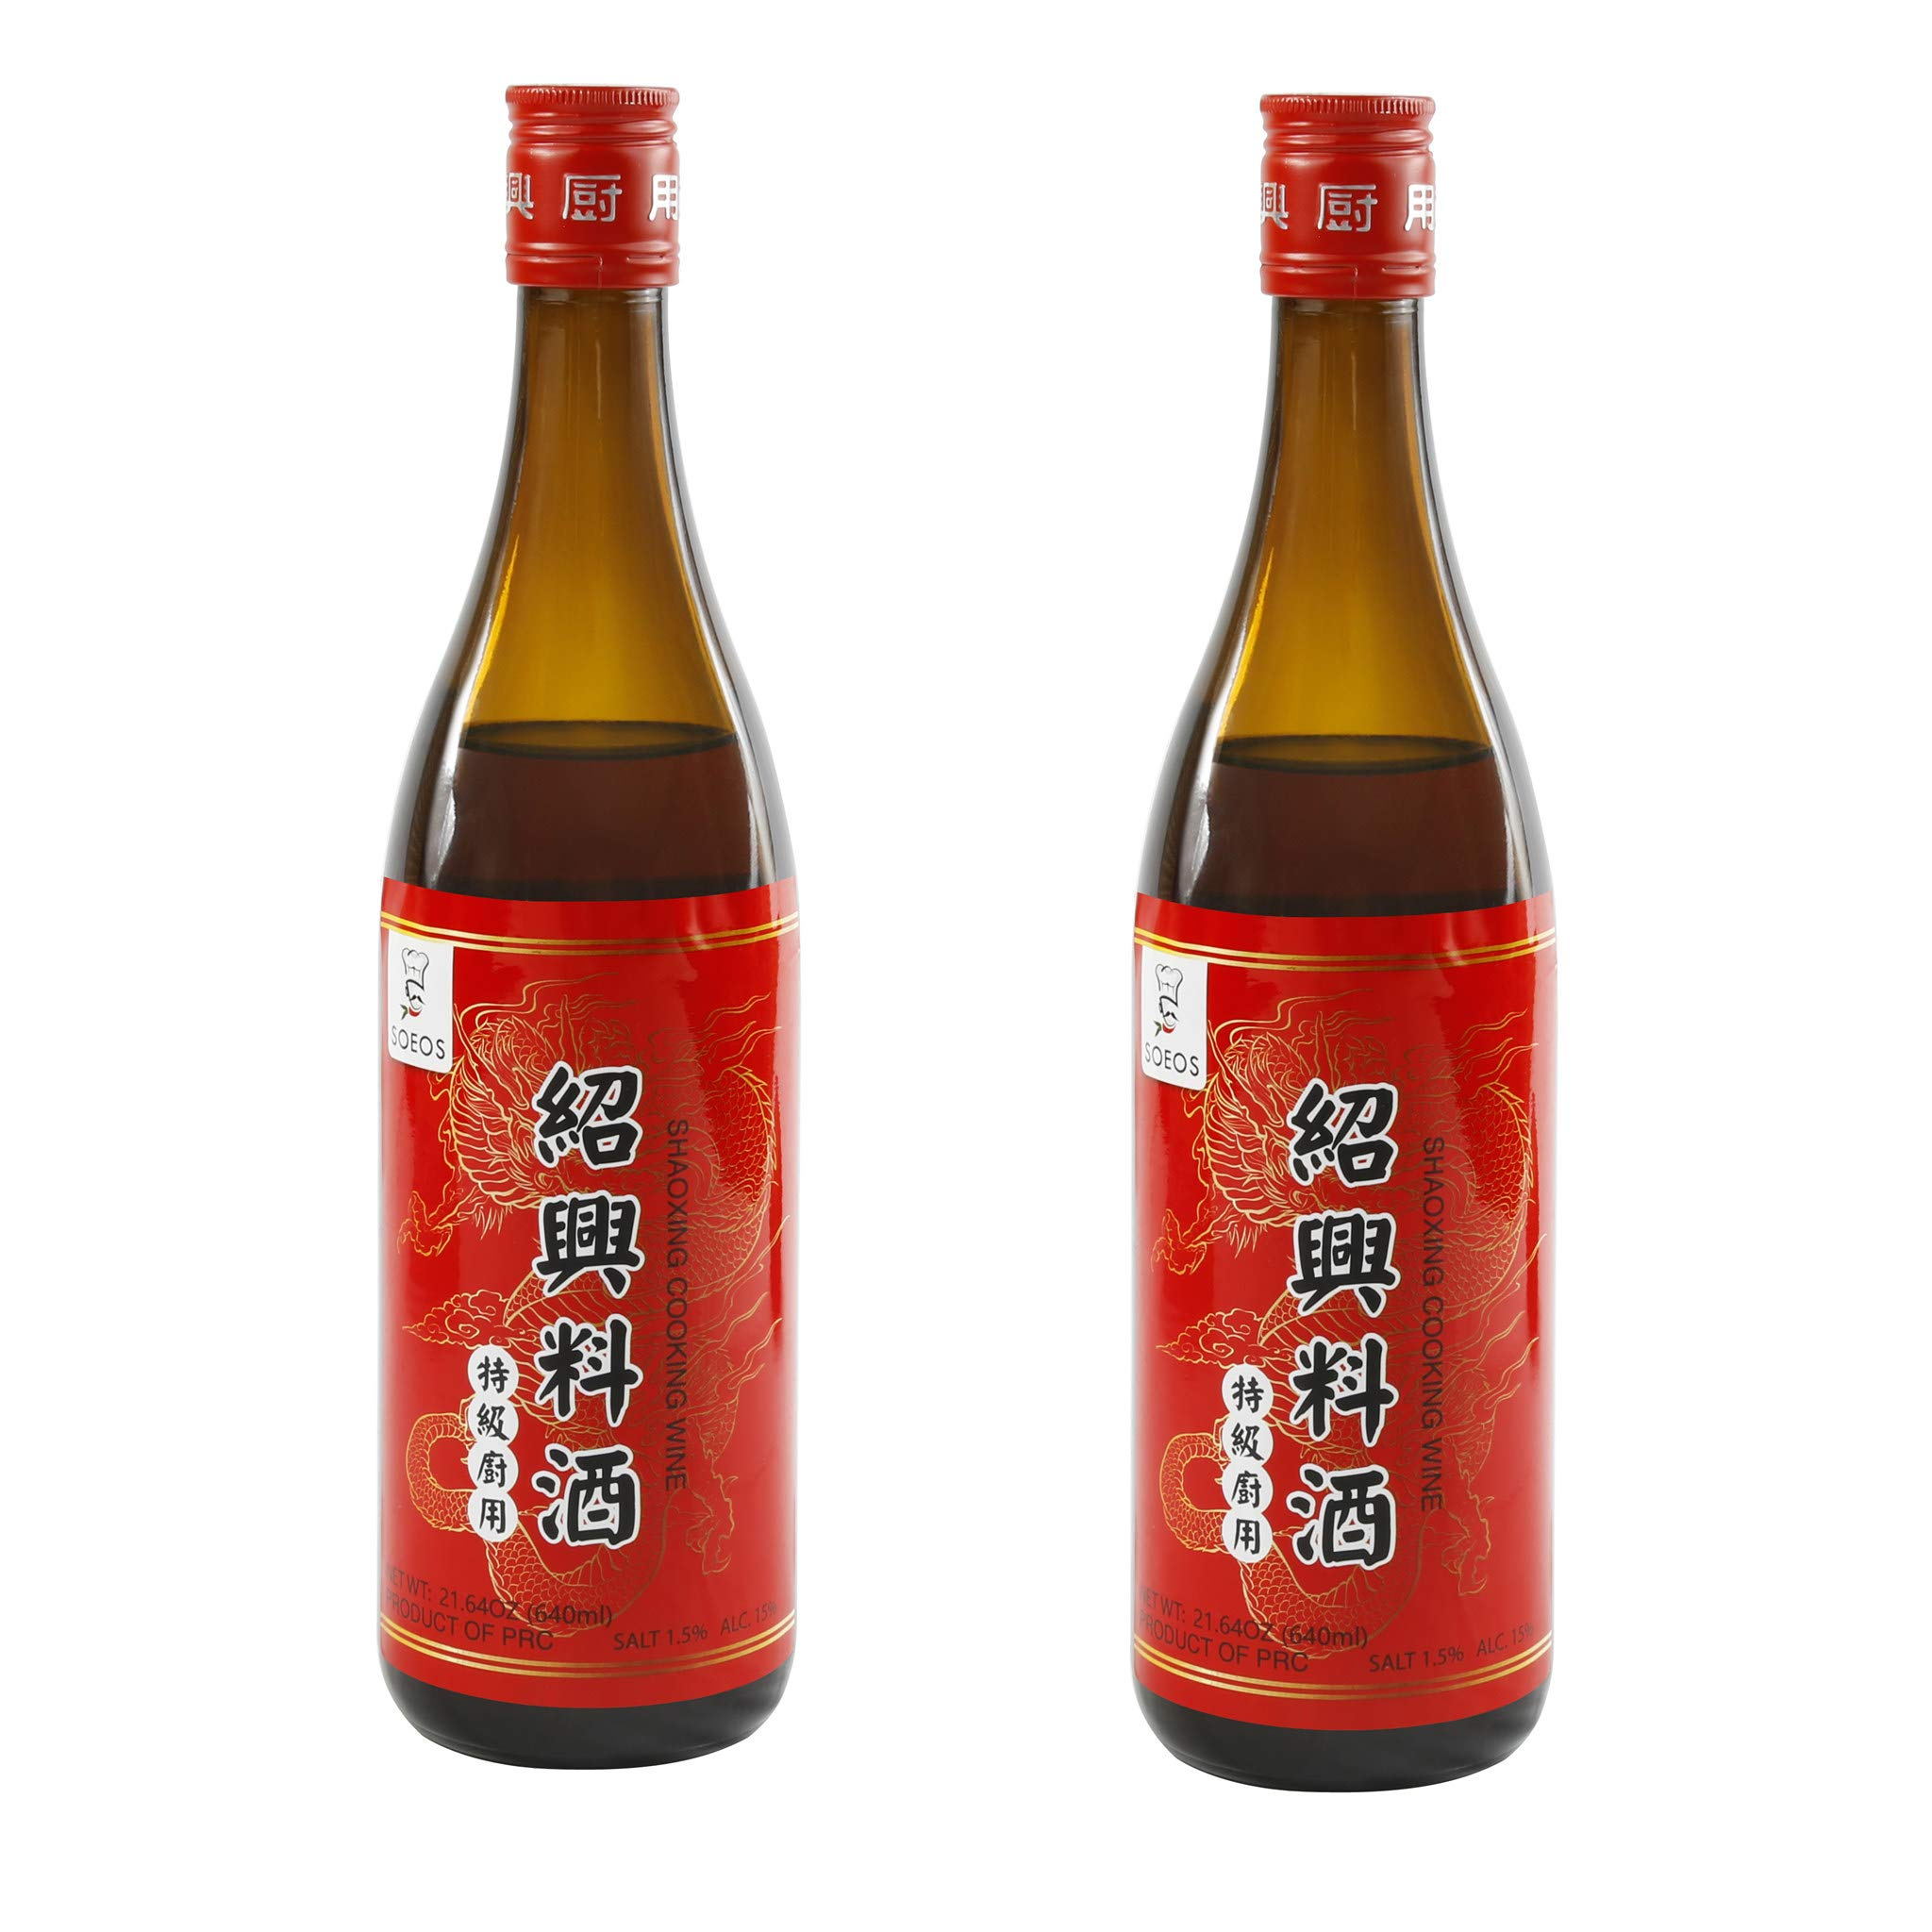 Soeos Shaohsing Rice Cooking Wine, Shaoxing Rice Wine, Chinese Cooking wine, 640ML(Pack of 2)